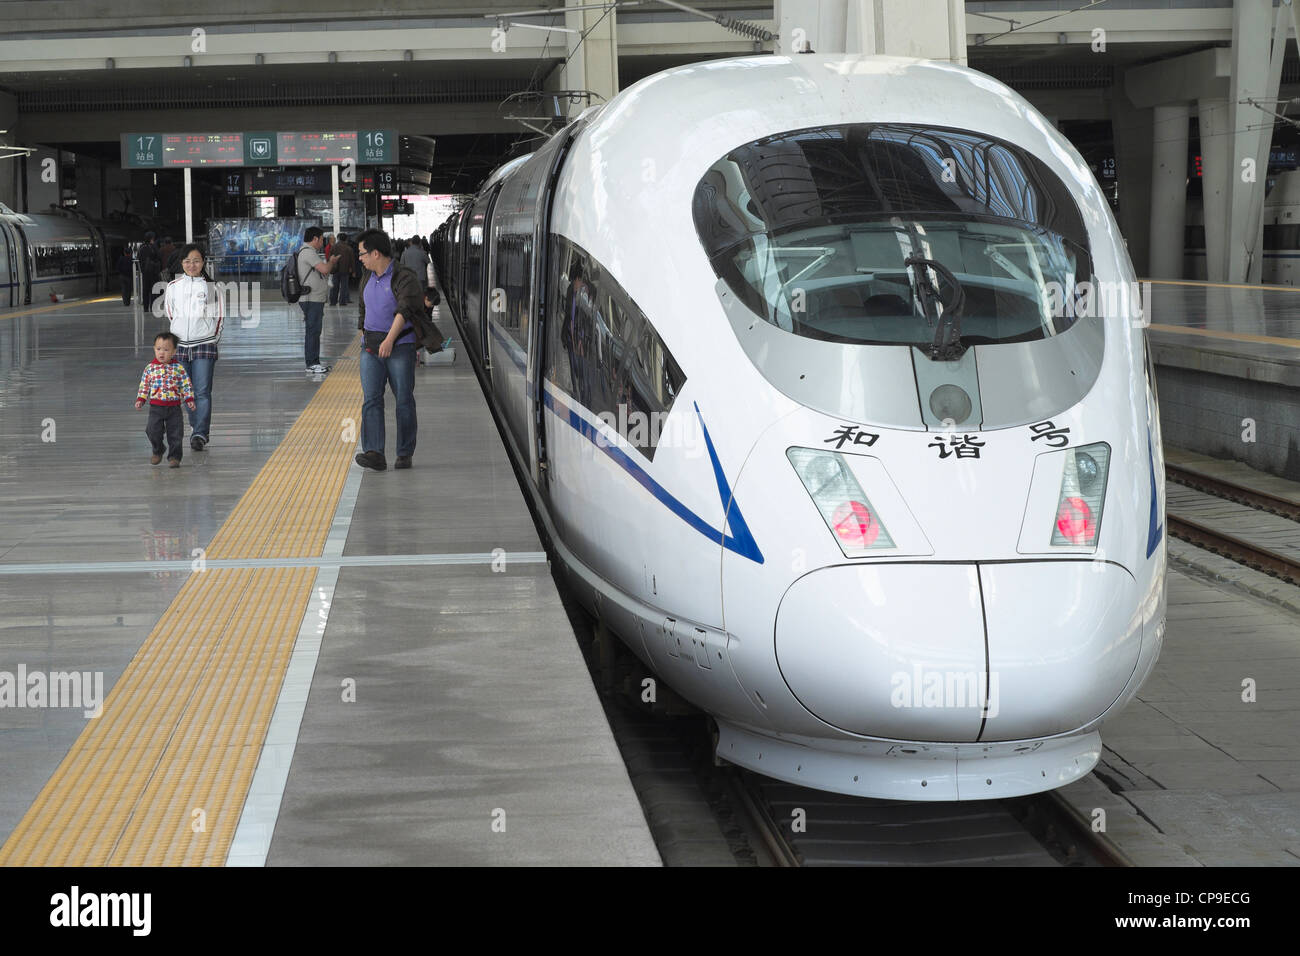 New high speed train at platform in Beijing South Railway station in China - Stock Image